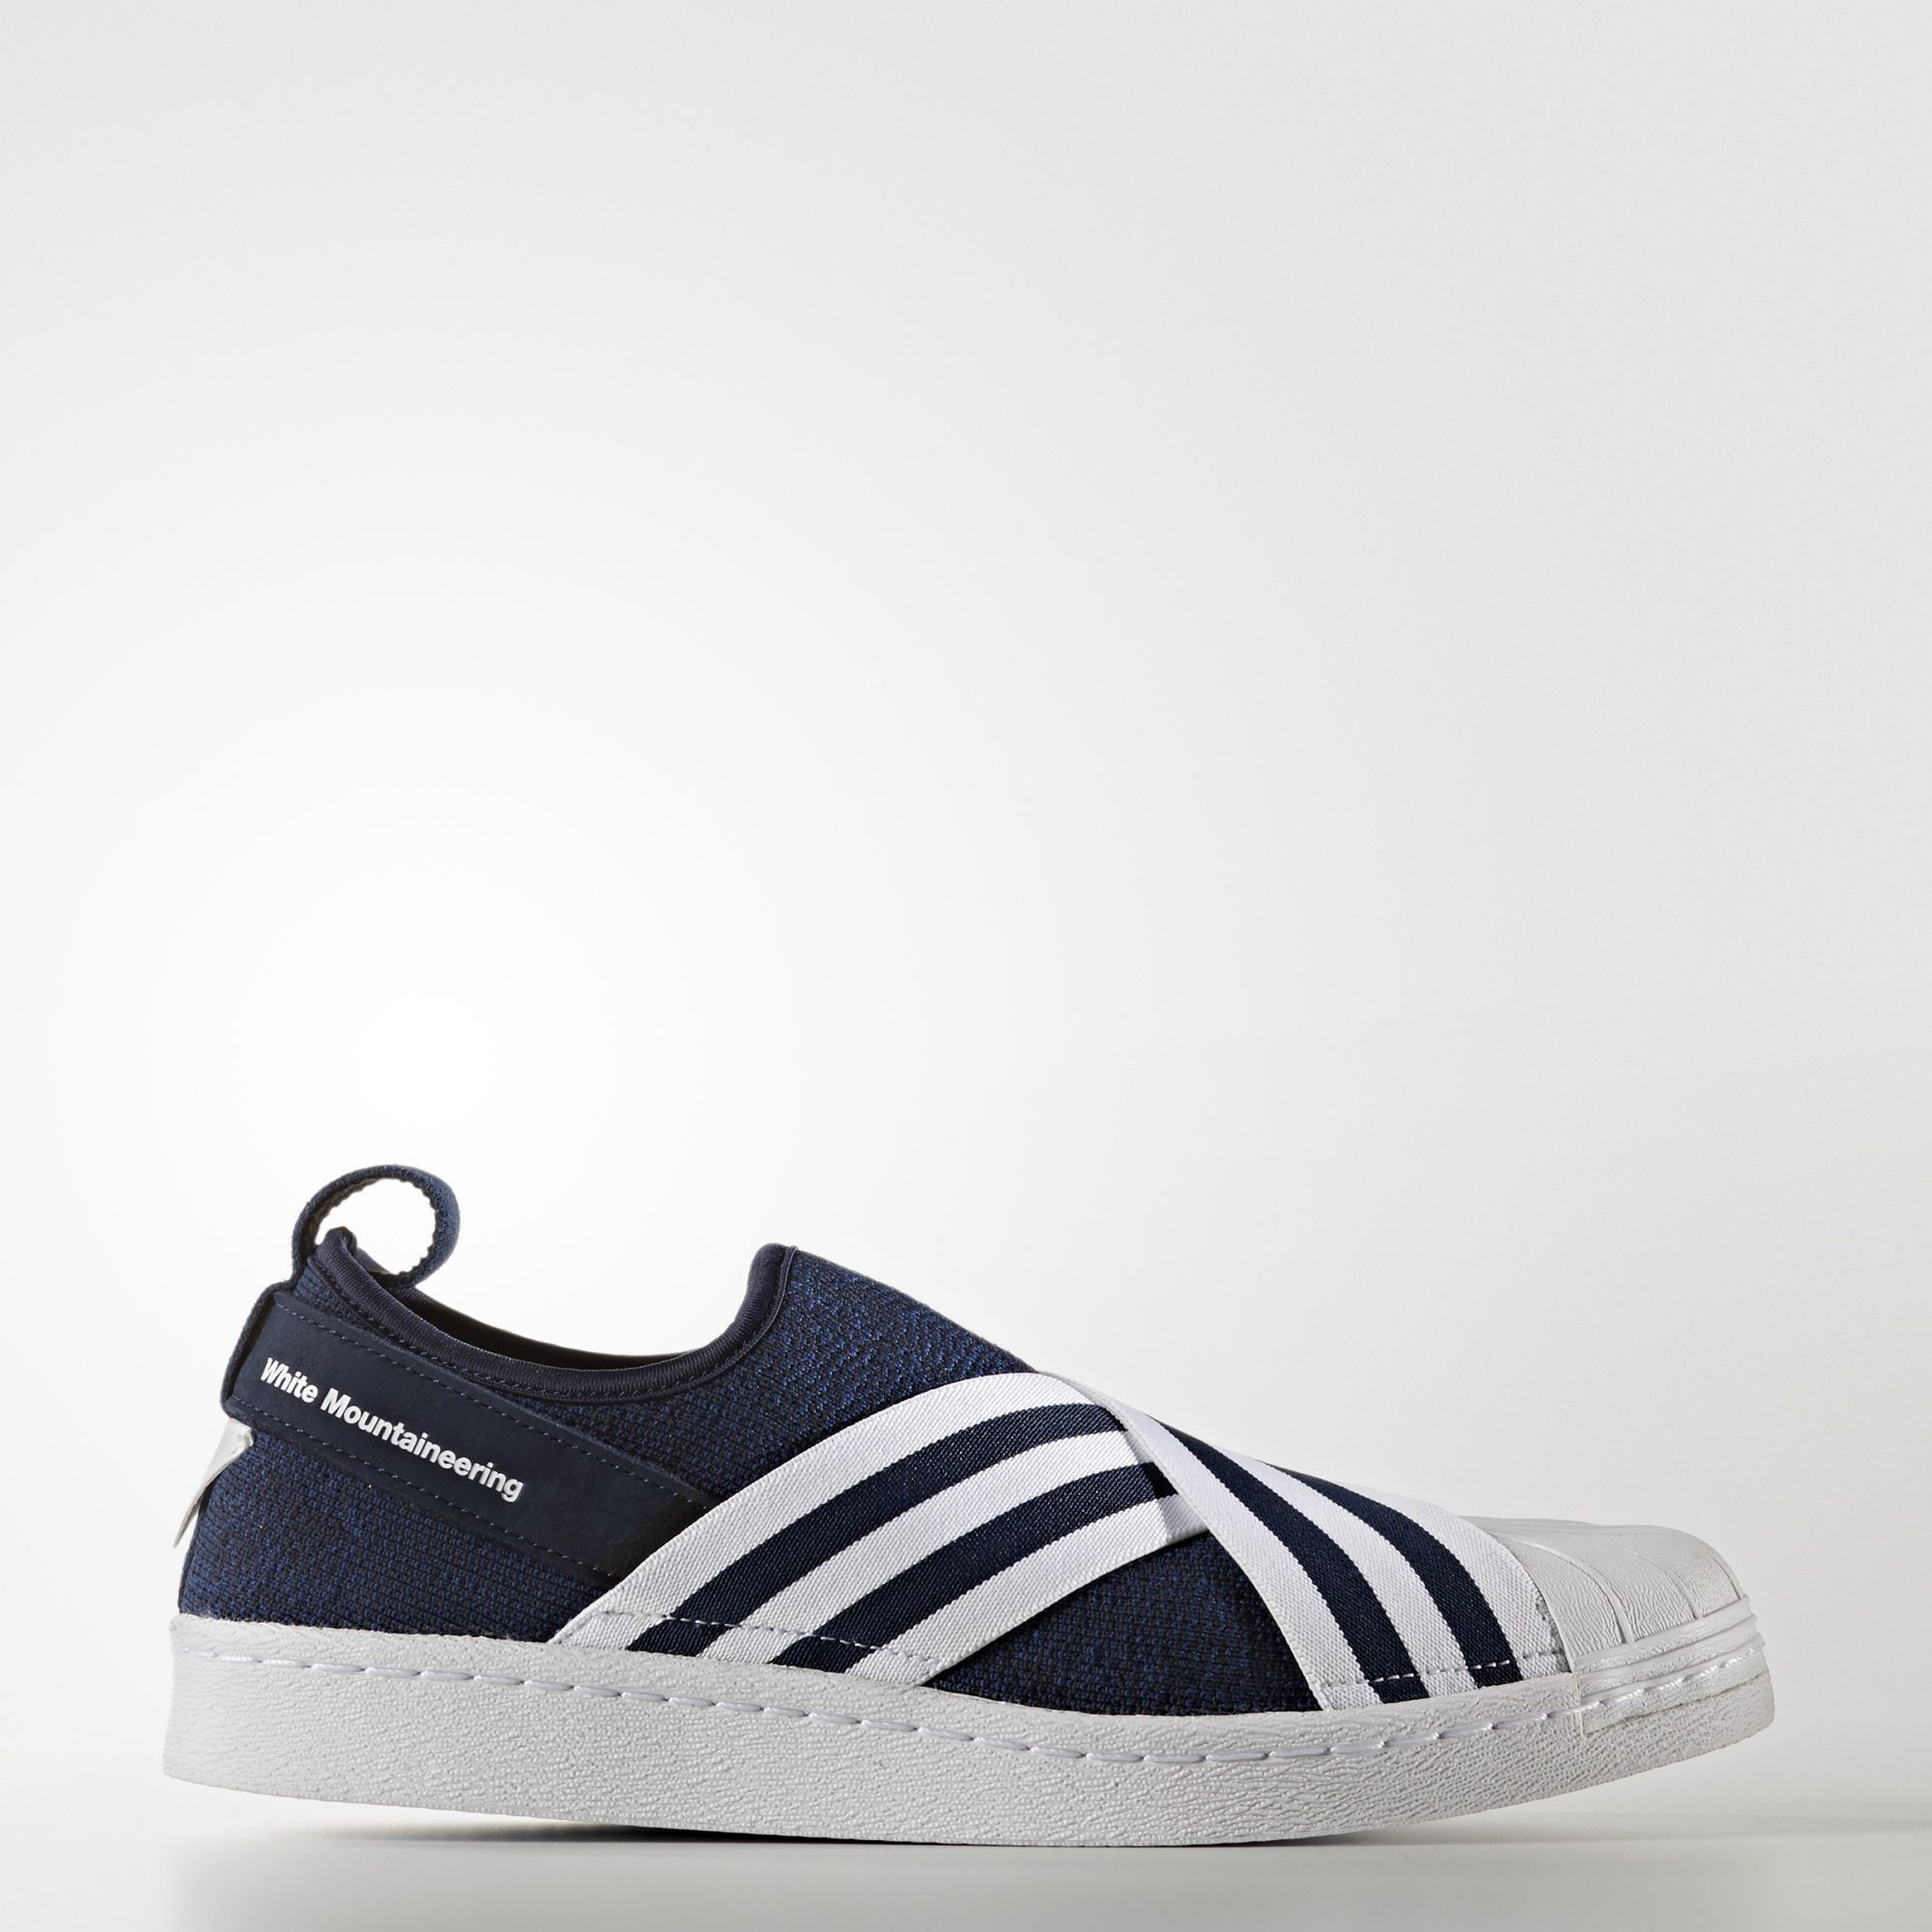 adidas - Zapatilla White Mountaineering Primeknit Superstar Slip-On.  Superstars ShoesSlip On ShoeSuper StarUnisexNavyMountaineeringAdidas ...